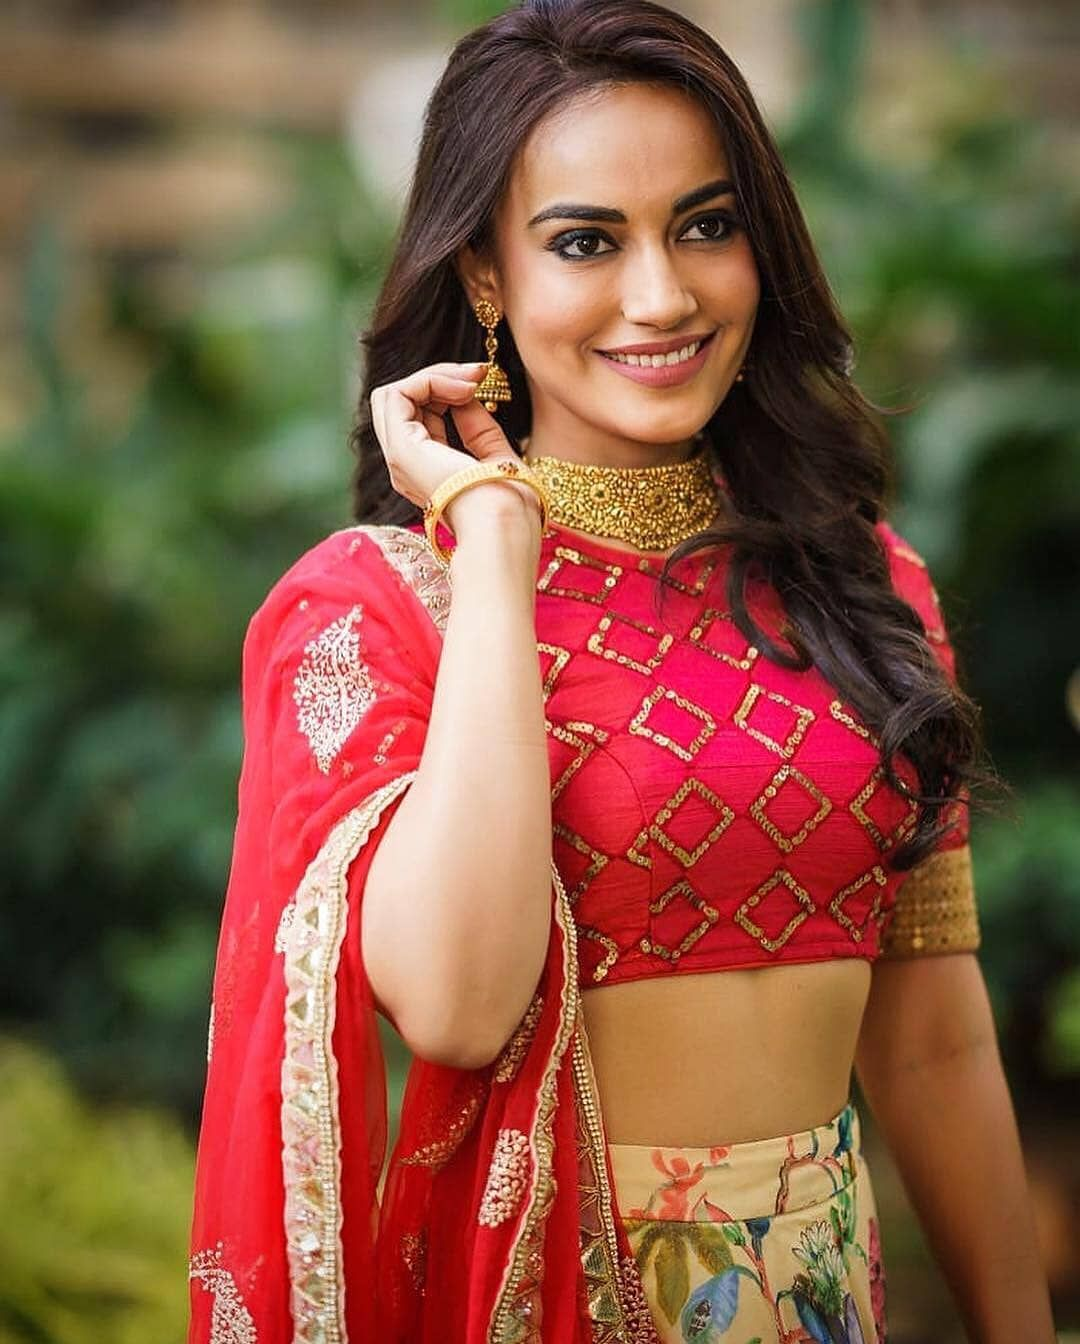 Unseen Photos Of Surbhi Jyoti From The Sets Of Naagin! 4